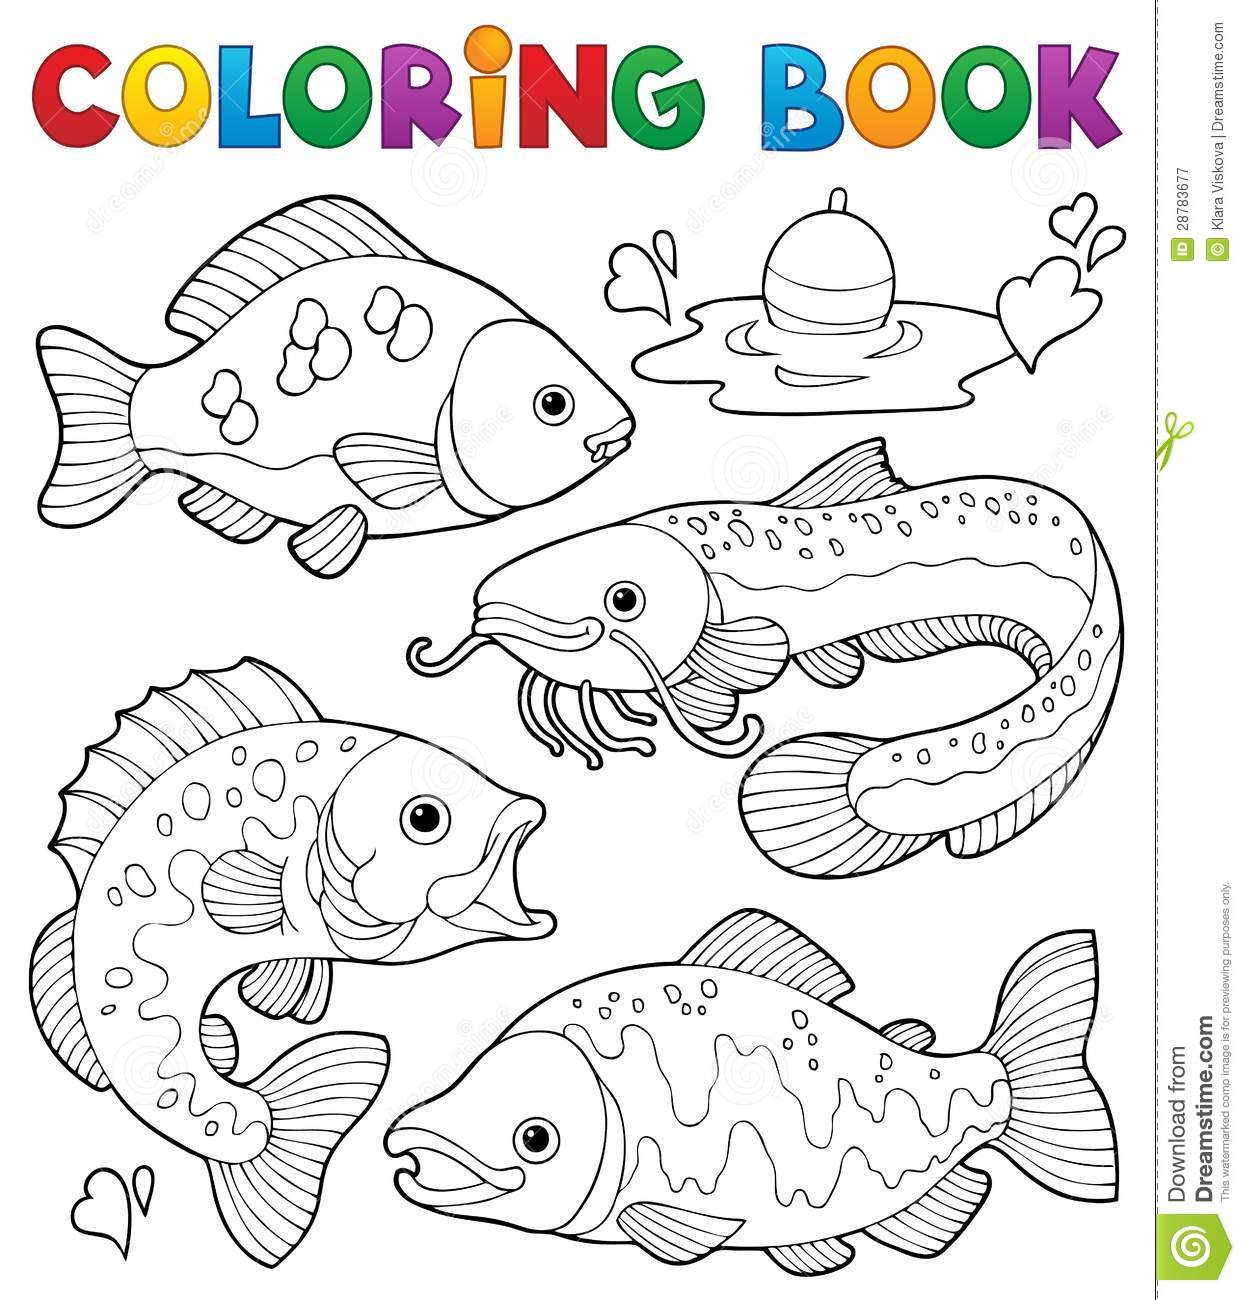 coloring book freshwater fishes 1 royalty free stock